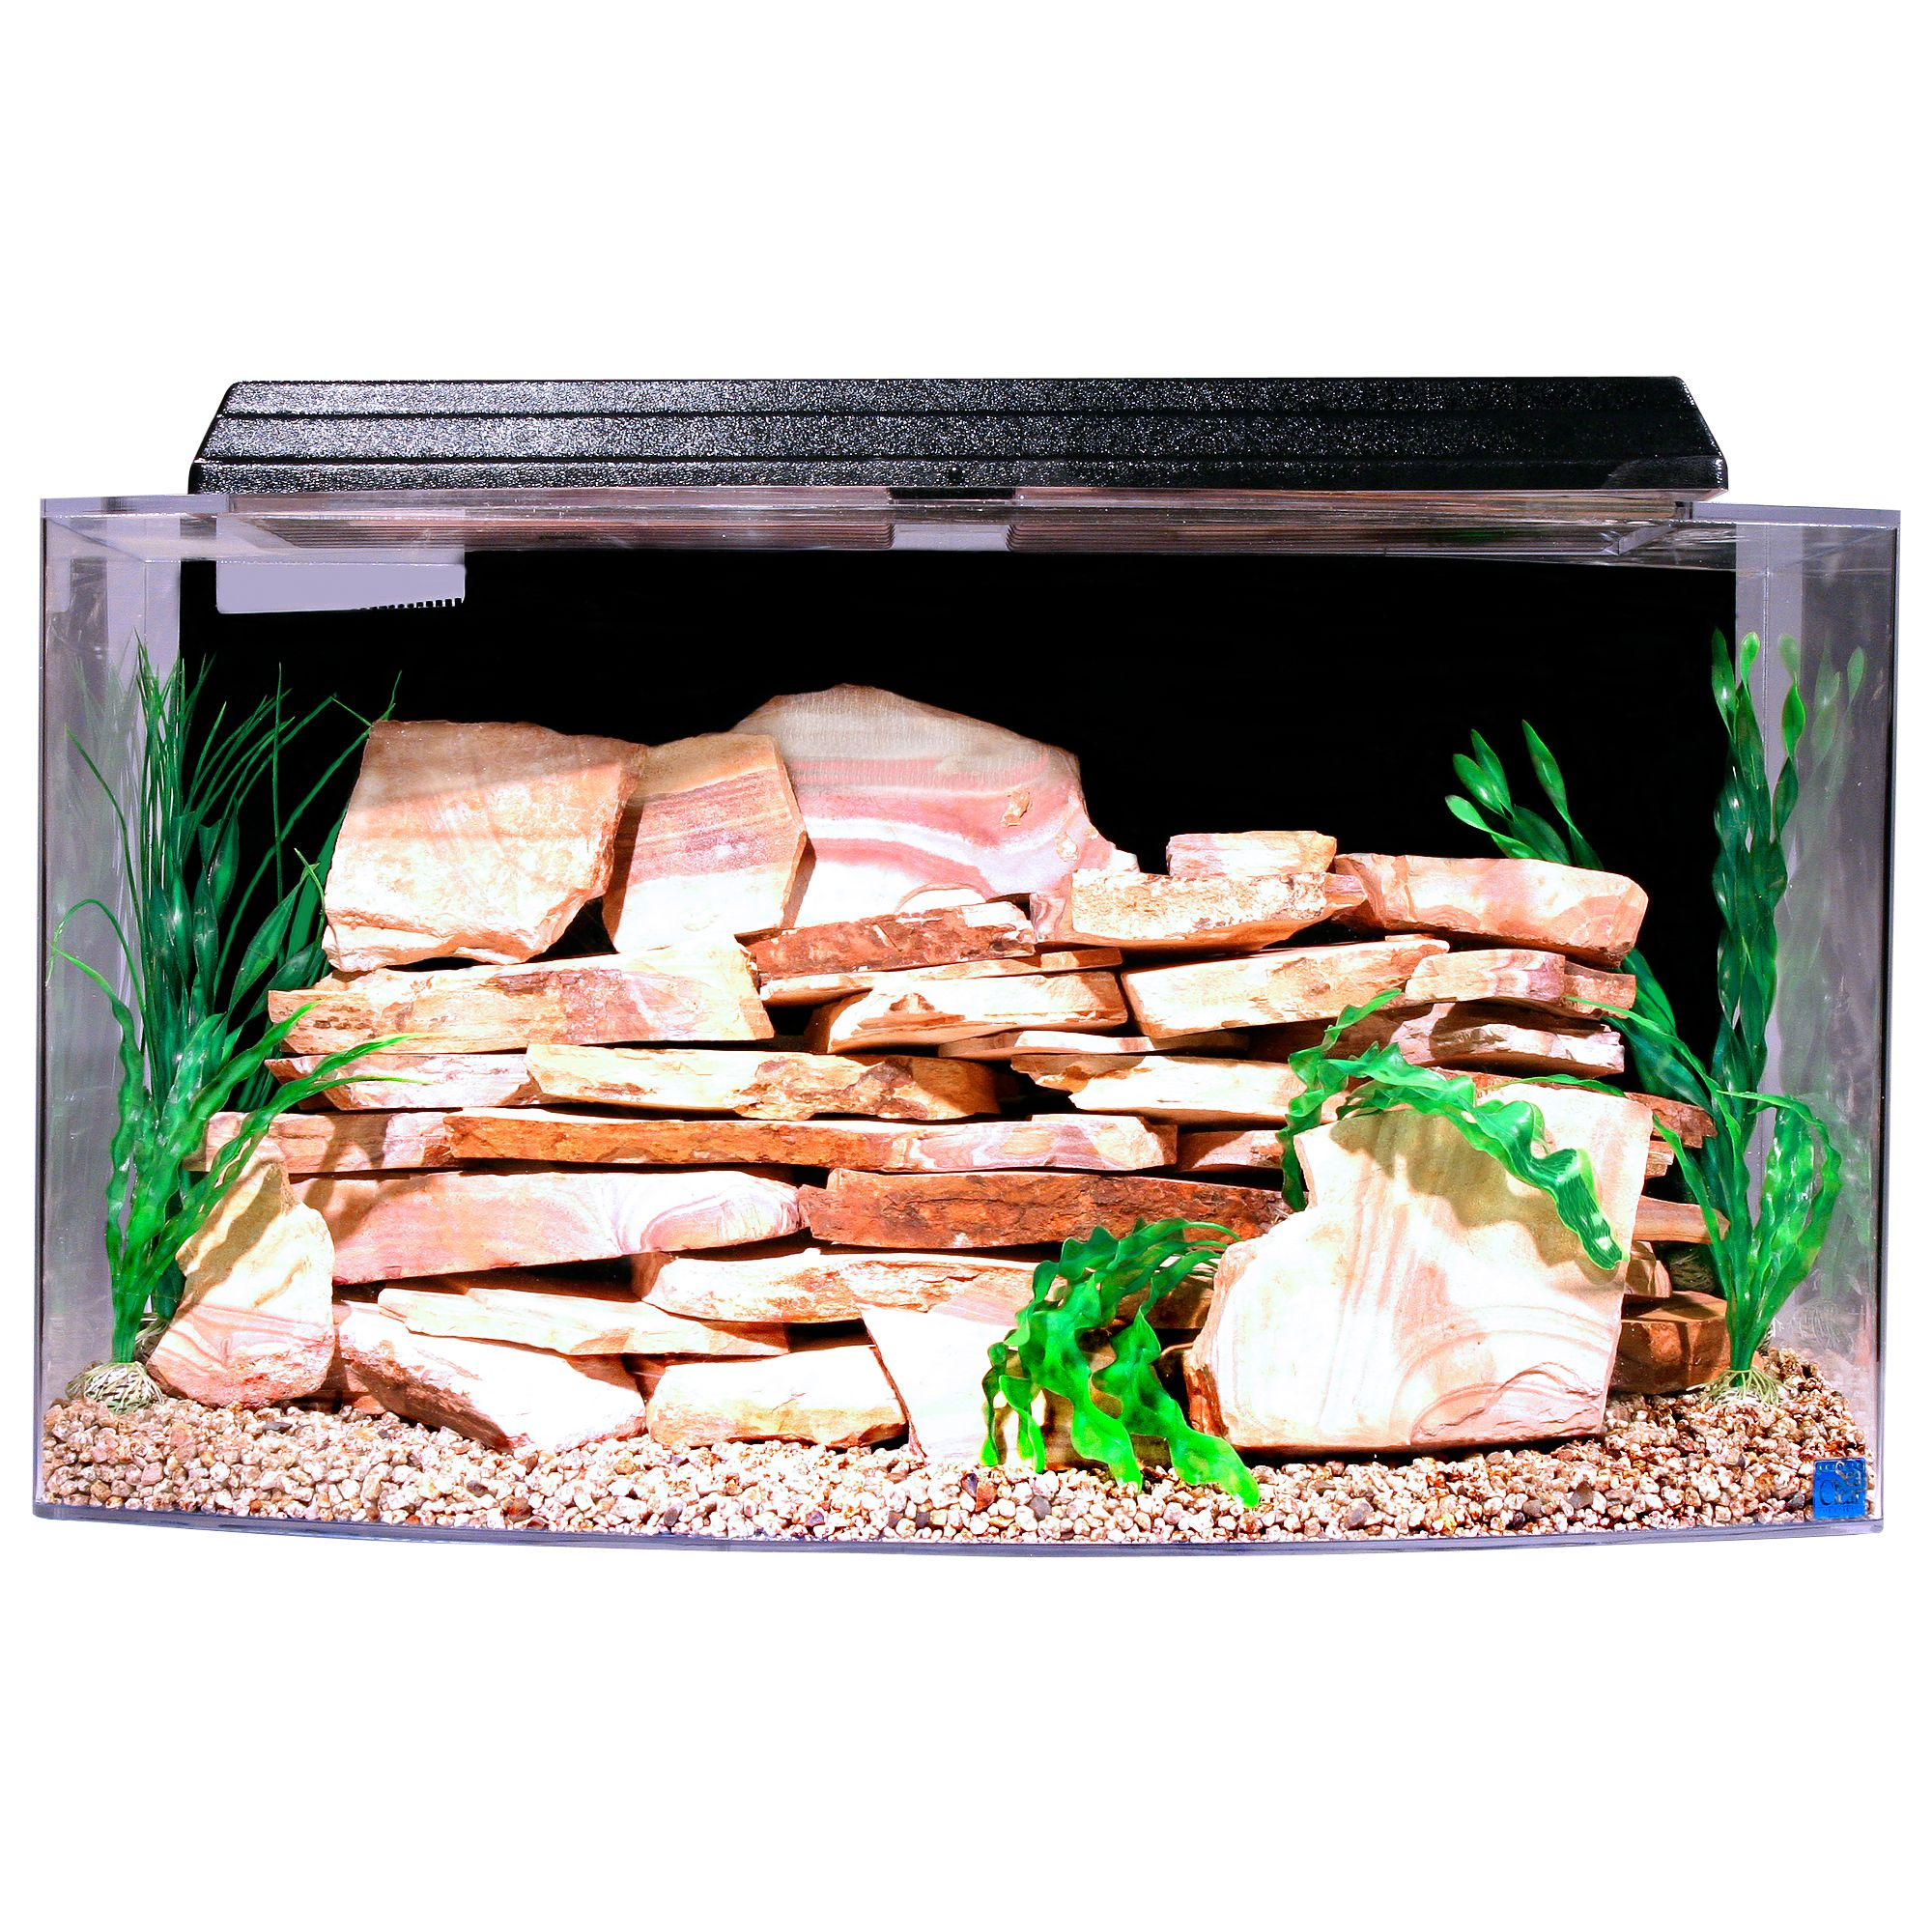 Seaclear System Ii Aquarium Size 46 Gal Black North American Pet Products